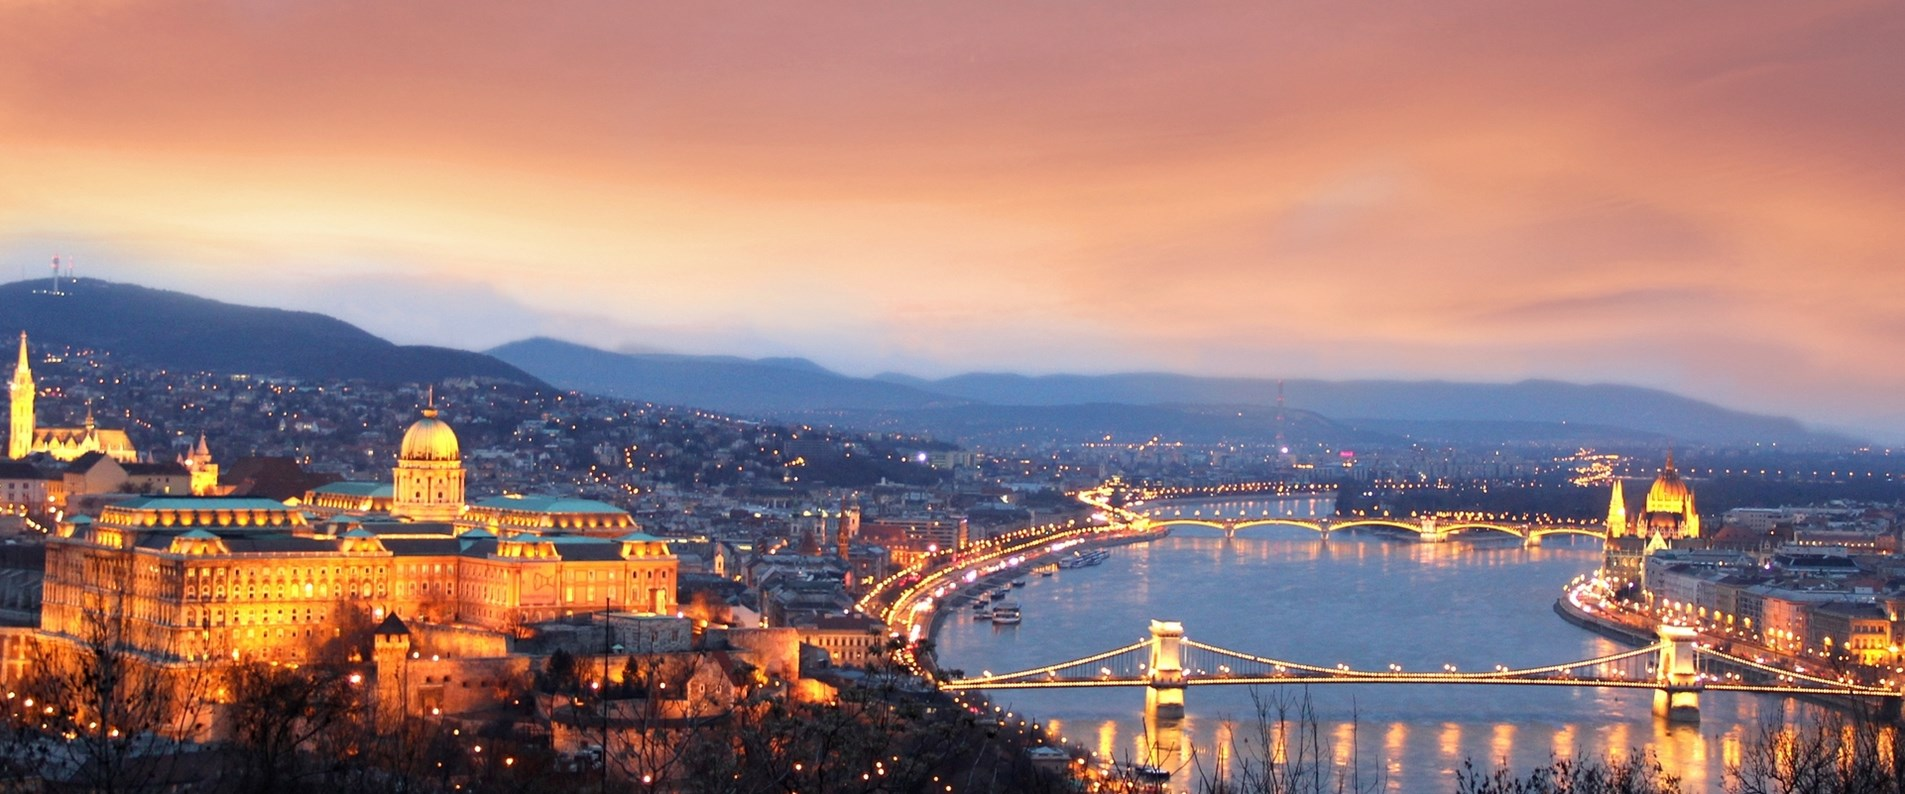 slider_budapest-panorama.jpg;width=1905;height=794;mode=crop;anchor=bottom;autorotate=true;quality=90;scale=both.jpg